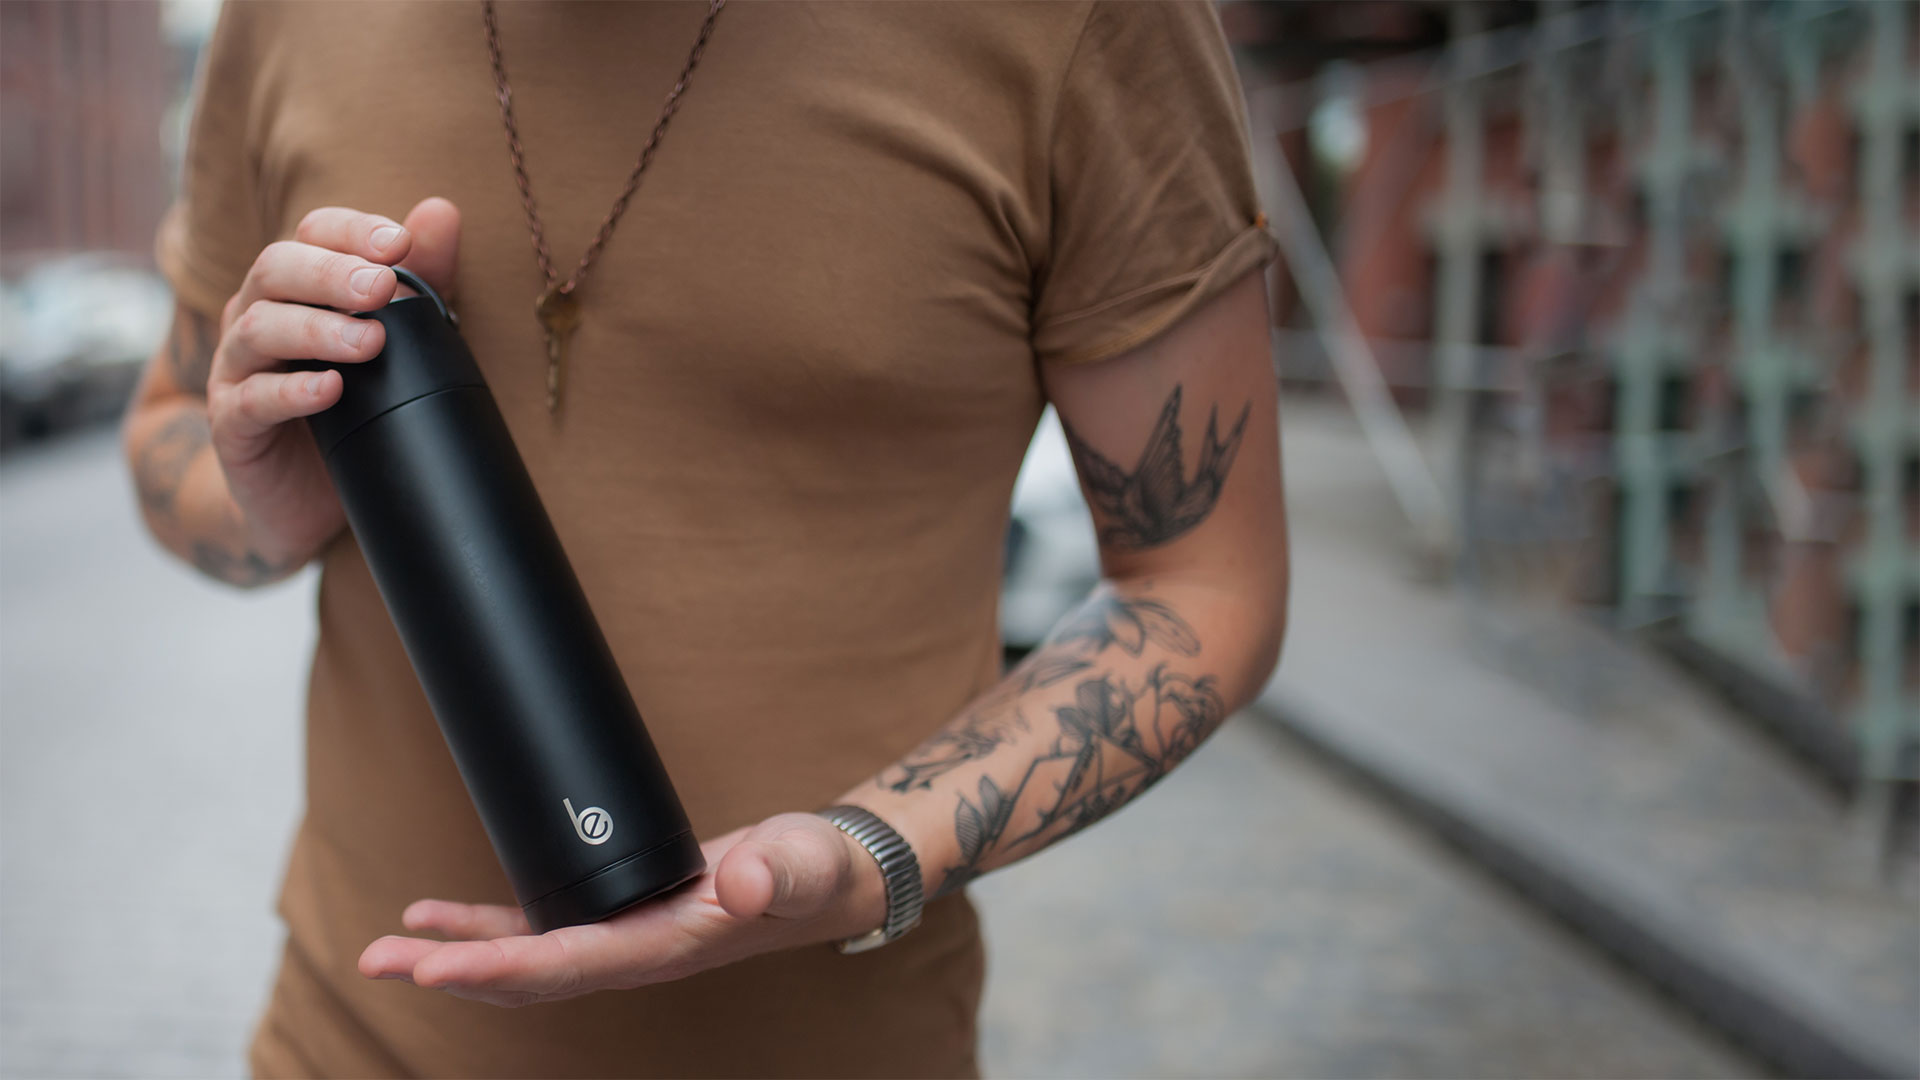 man holding a stainless steel reusable water bottle